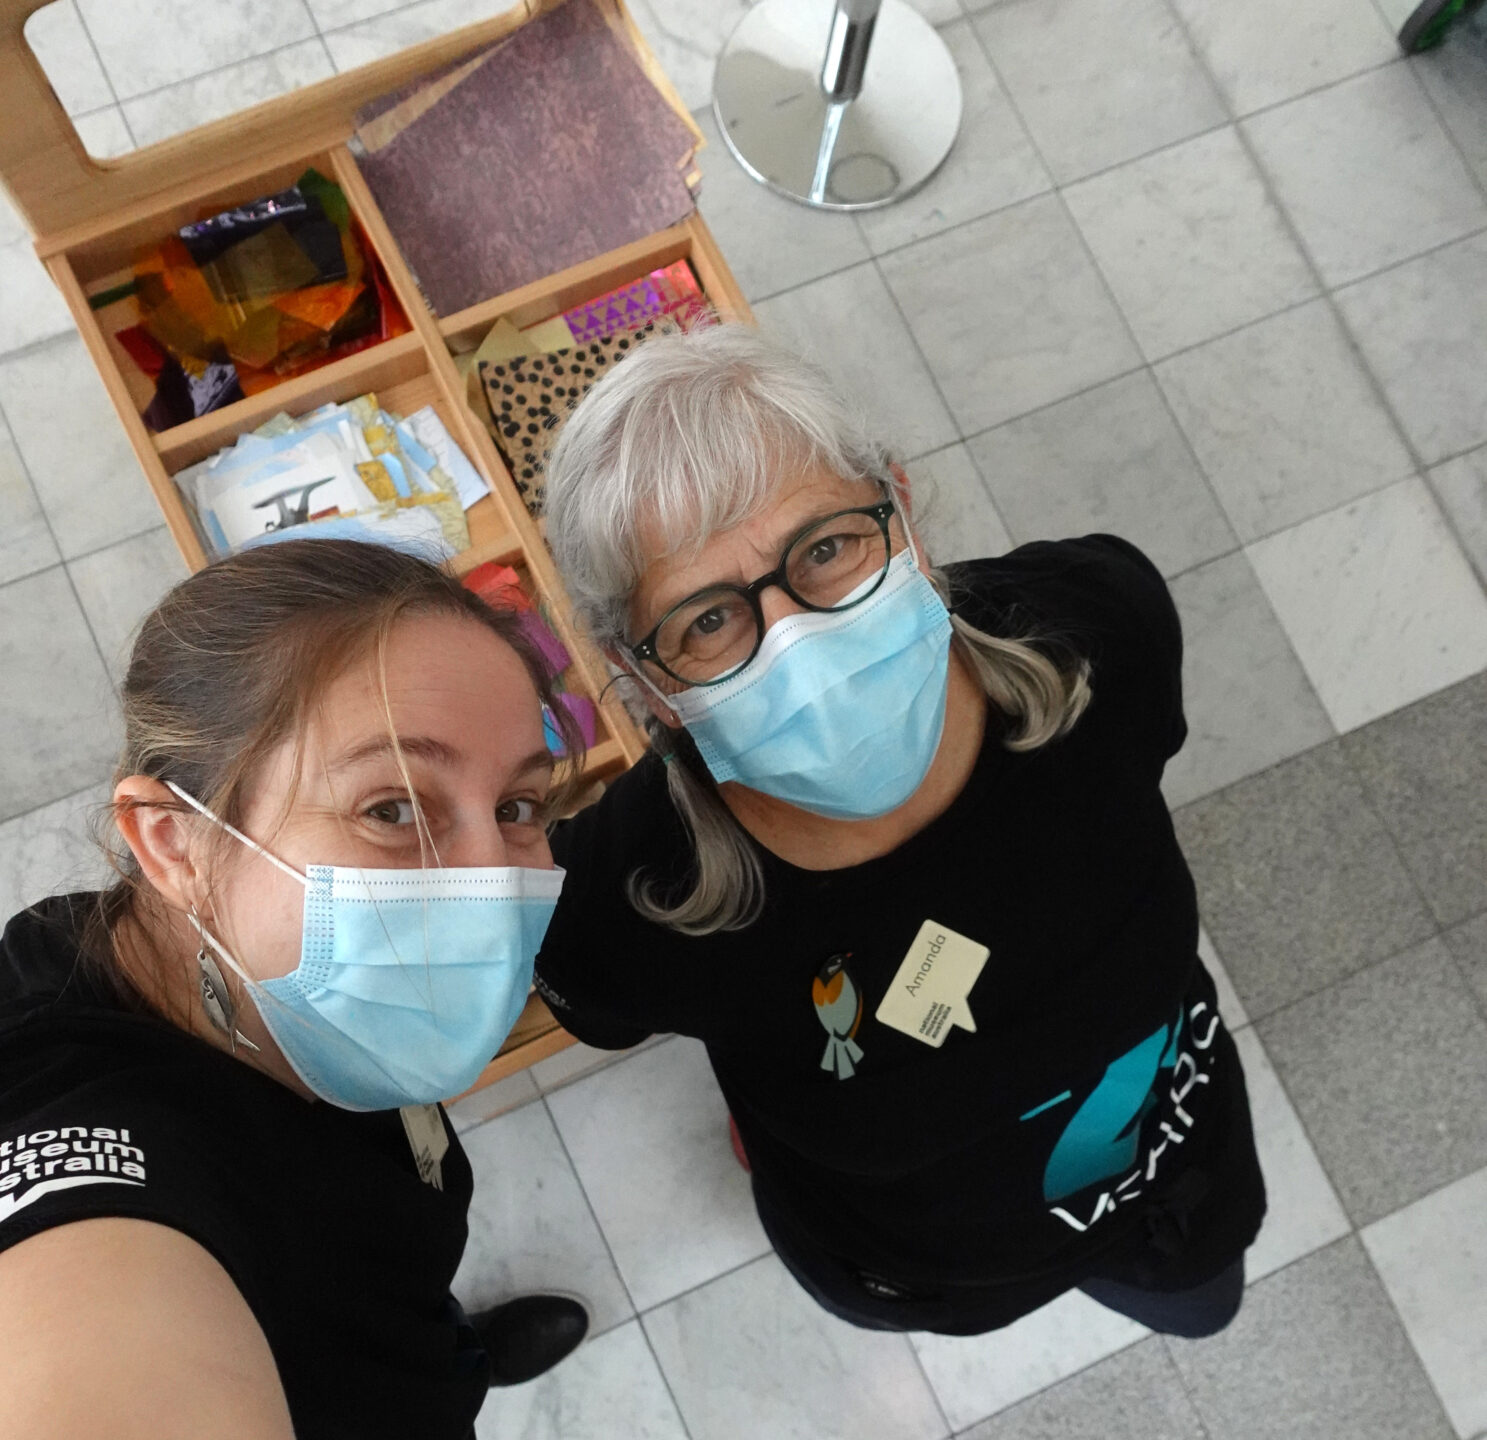 Two women taking a selfie with masks on.